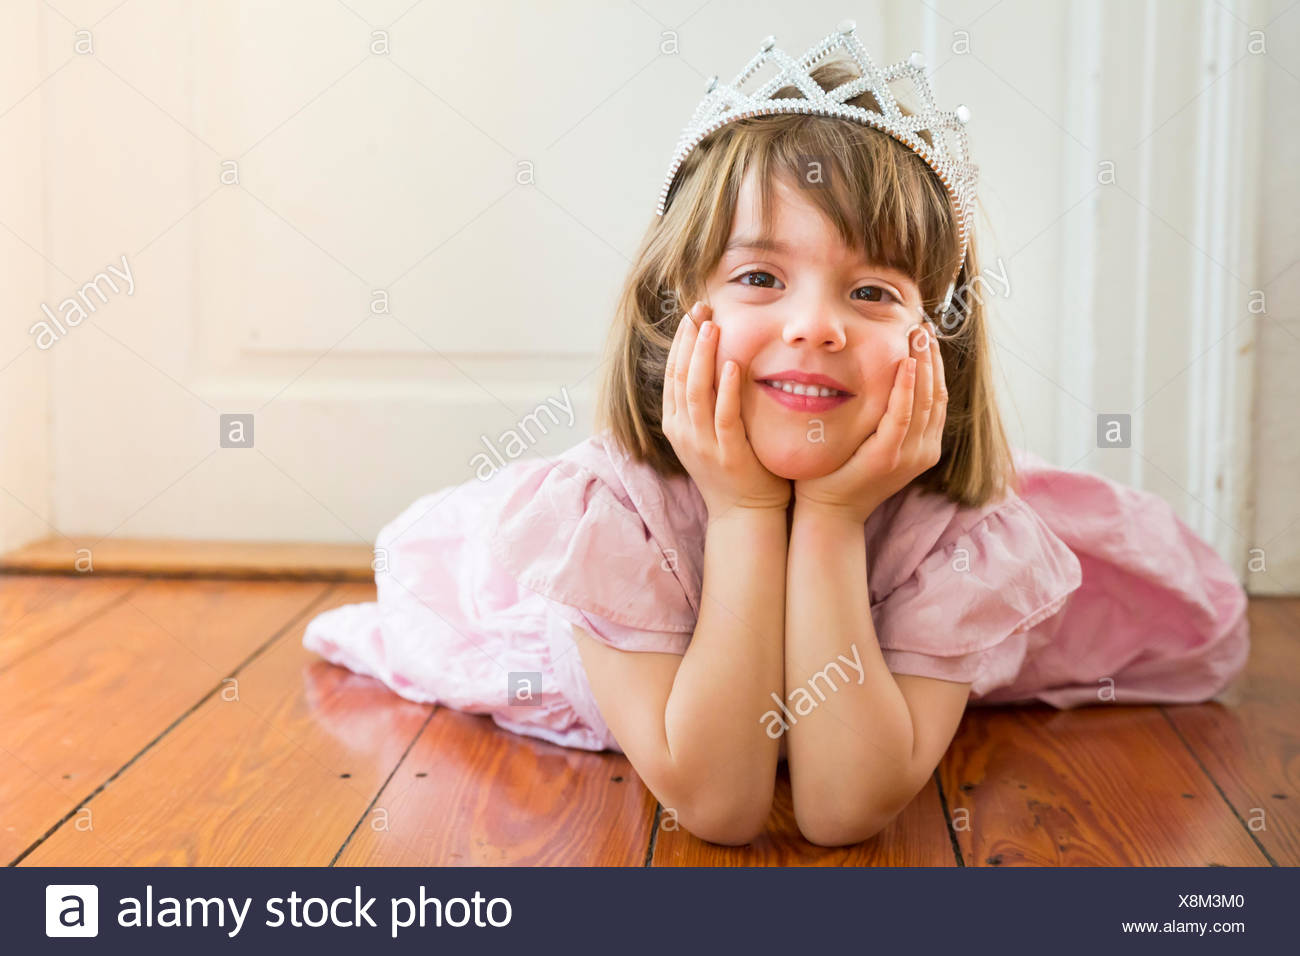 Portrait of smiling little girl dressed up as a princess lying on wooden floor Stock Photo